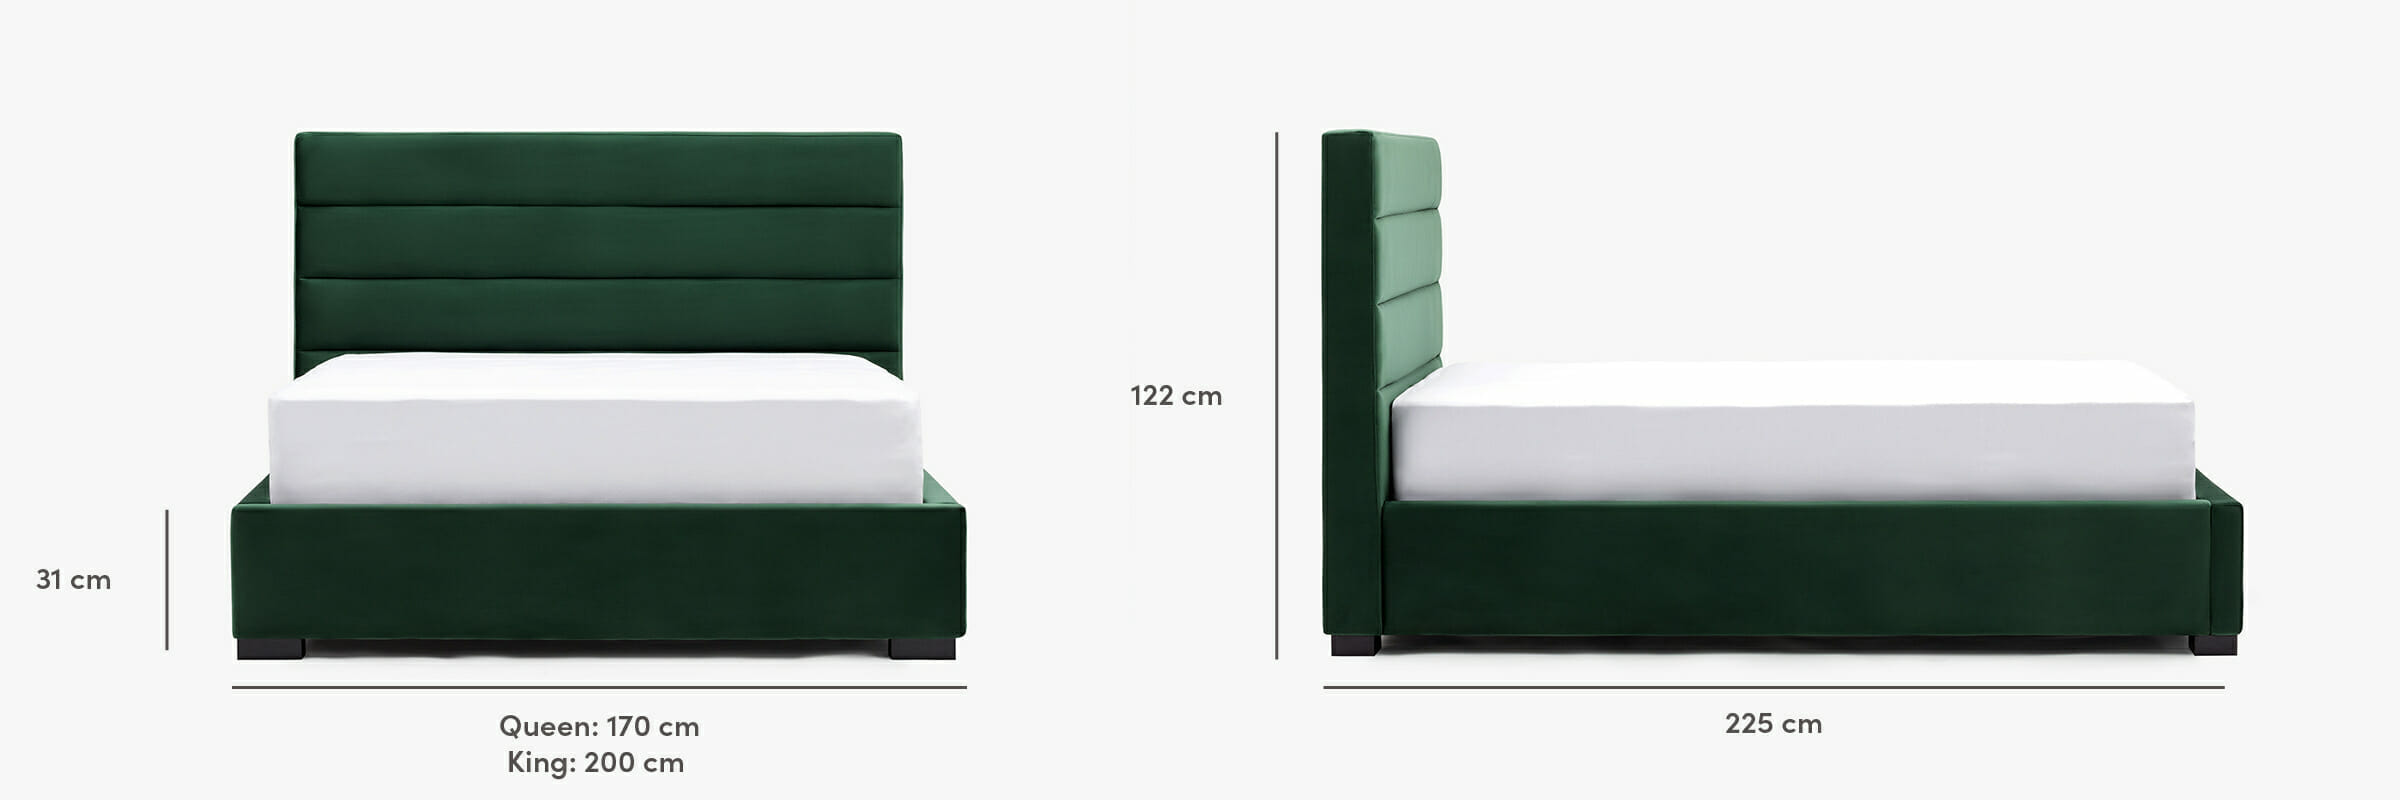 Oxford bed dimensions